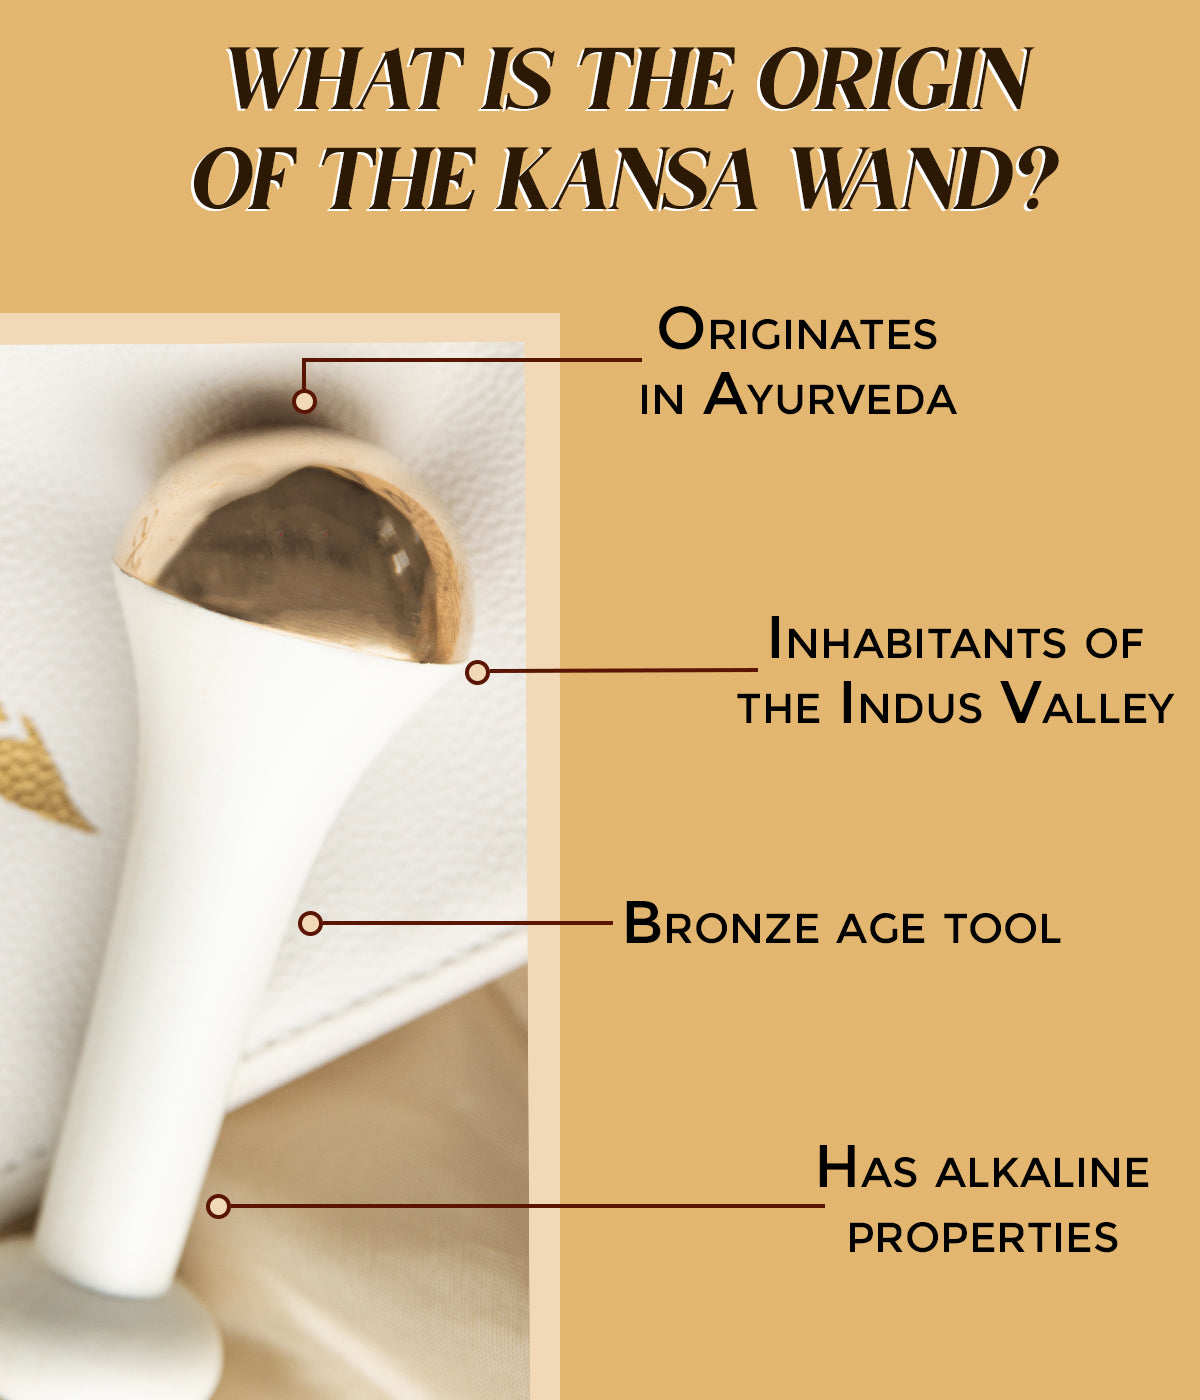 This is an image about the origins of the Kansa Wand, available on www.sublimelife.in